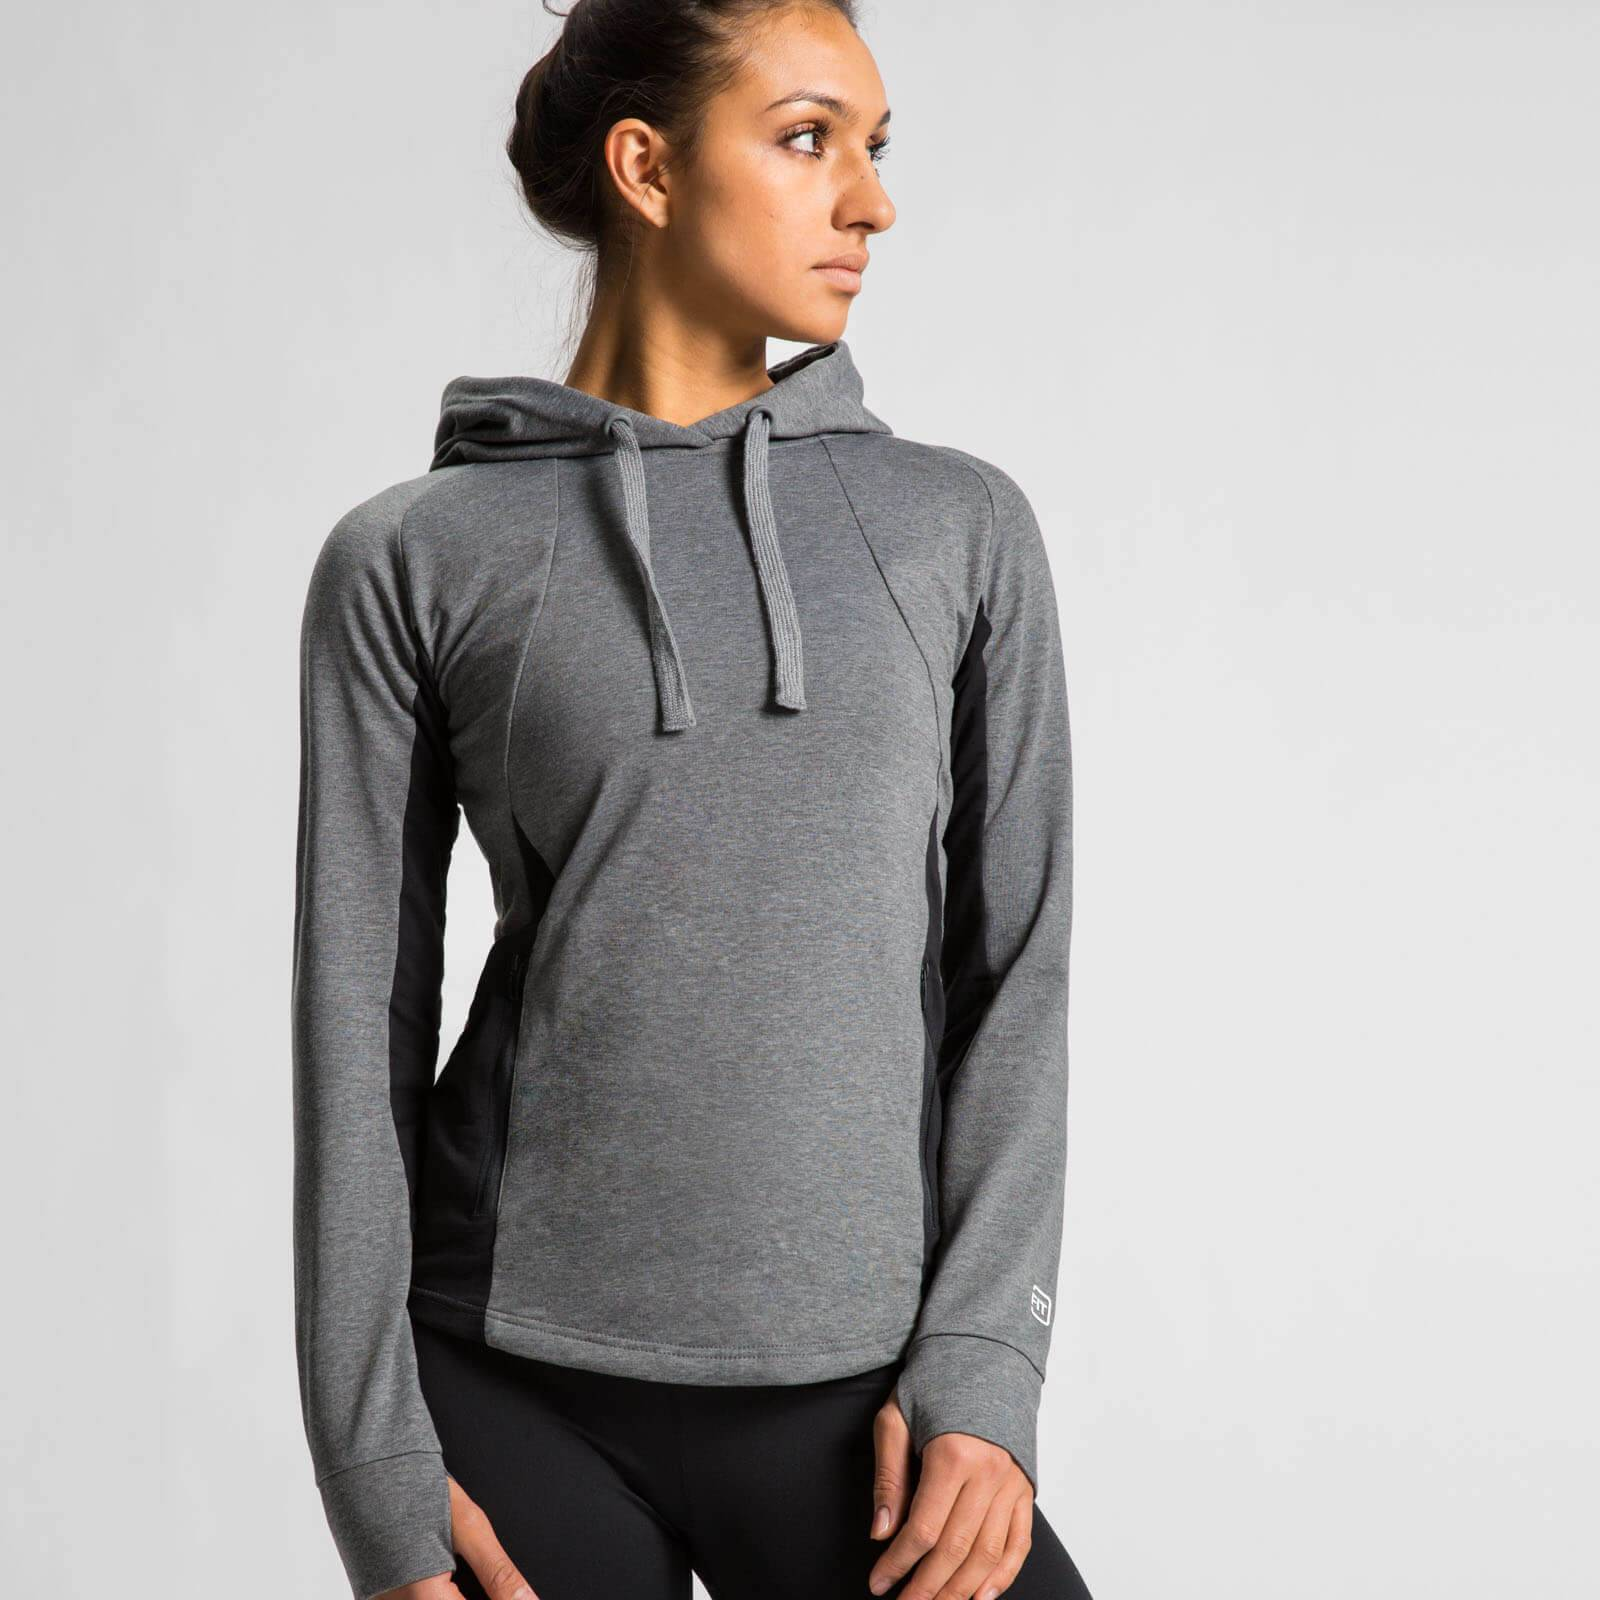 IdealFit Superlite Pullover Hoodie - Charcoal - M - Charcoal